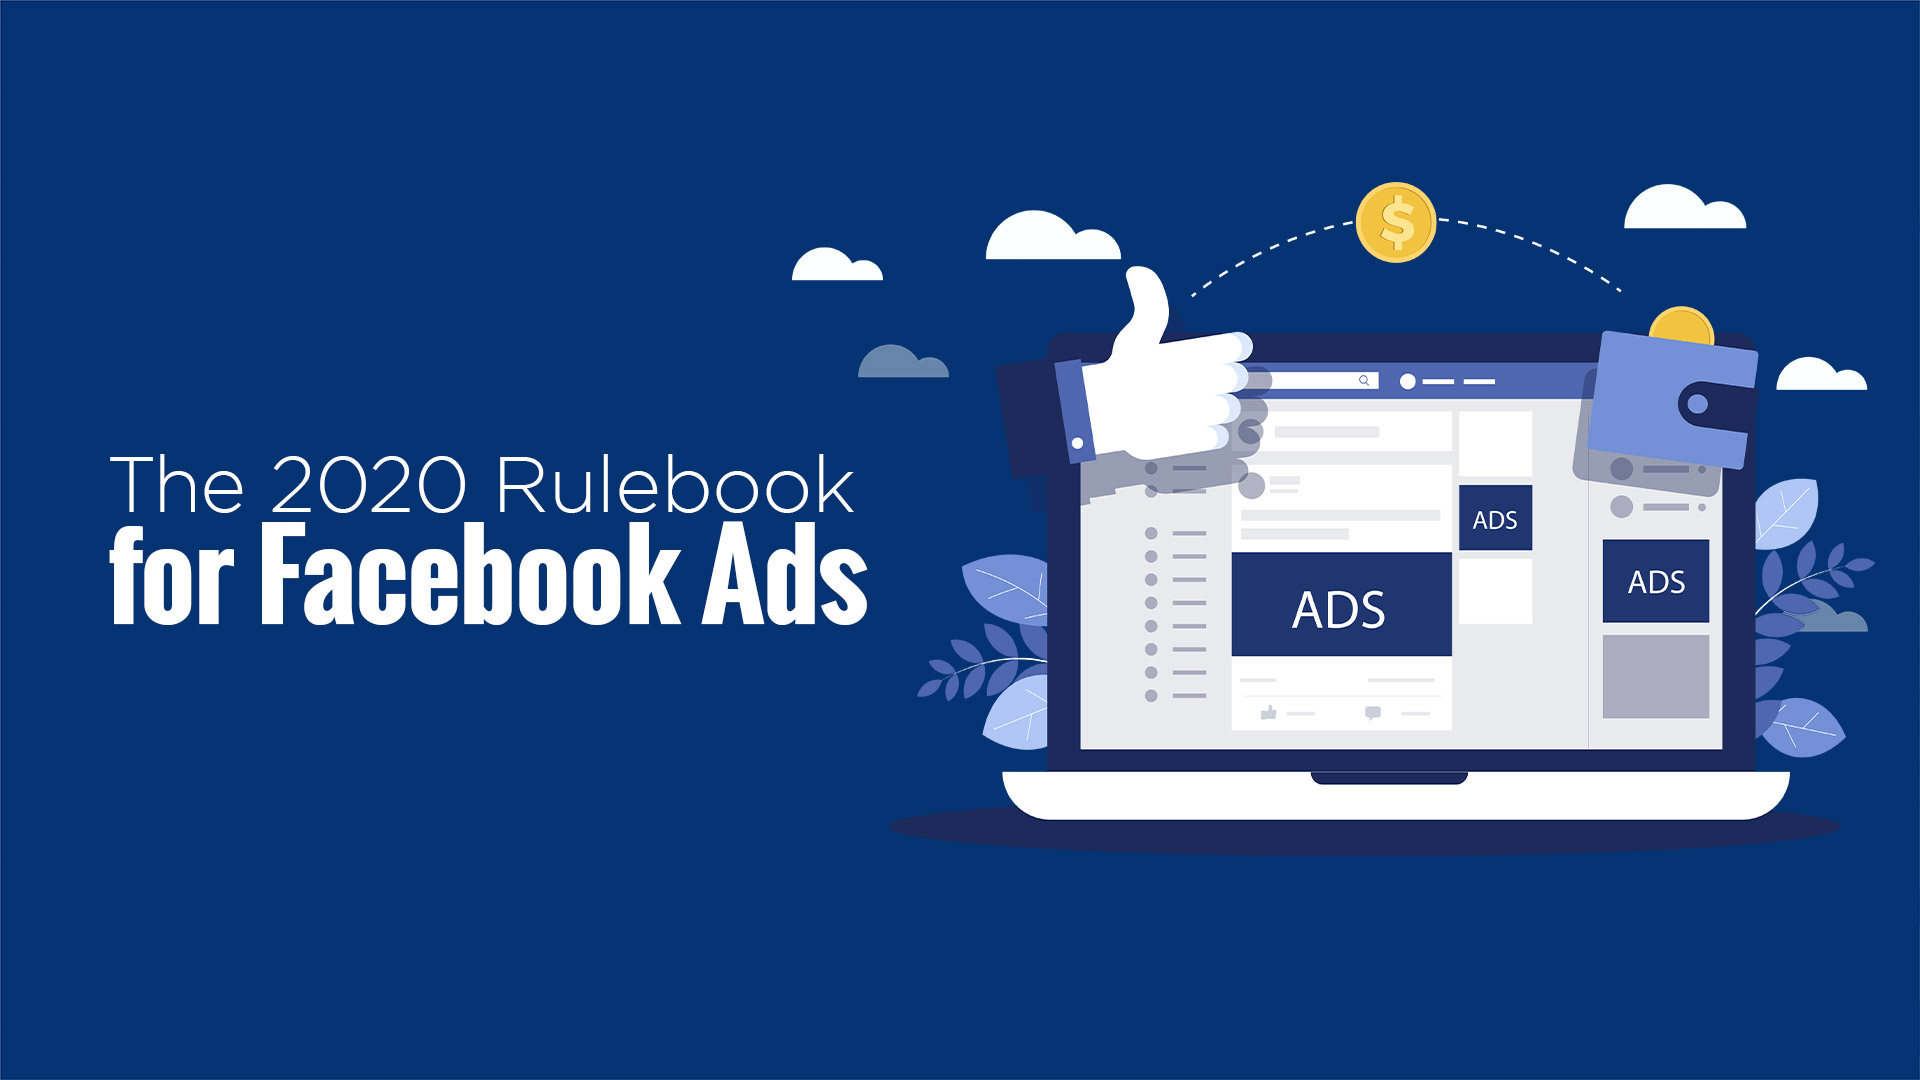 The 2020 Rulebook for Facebook Ads